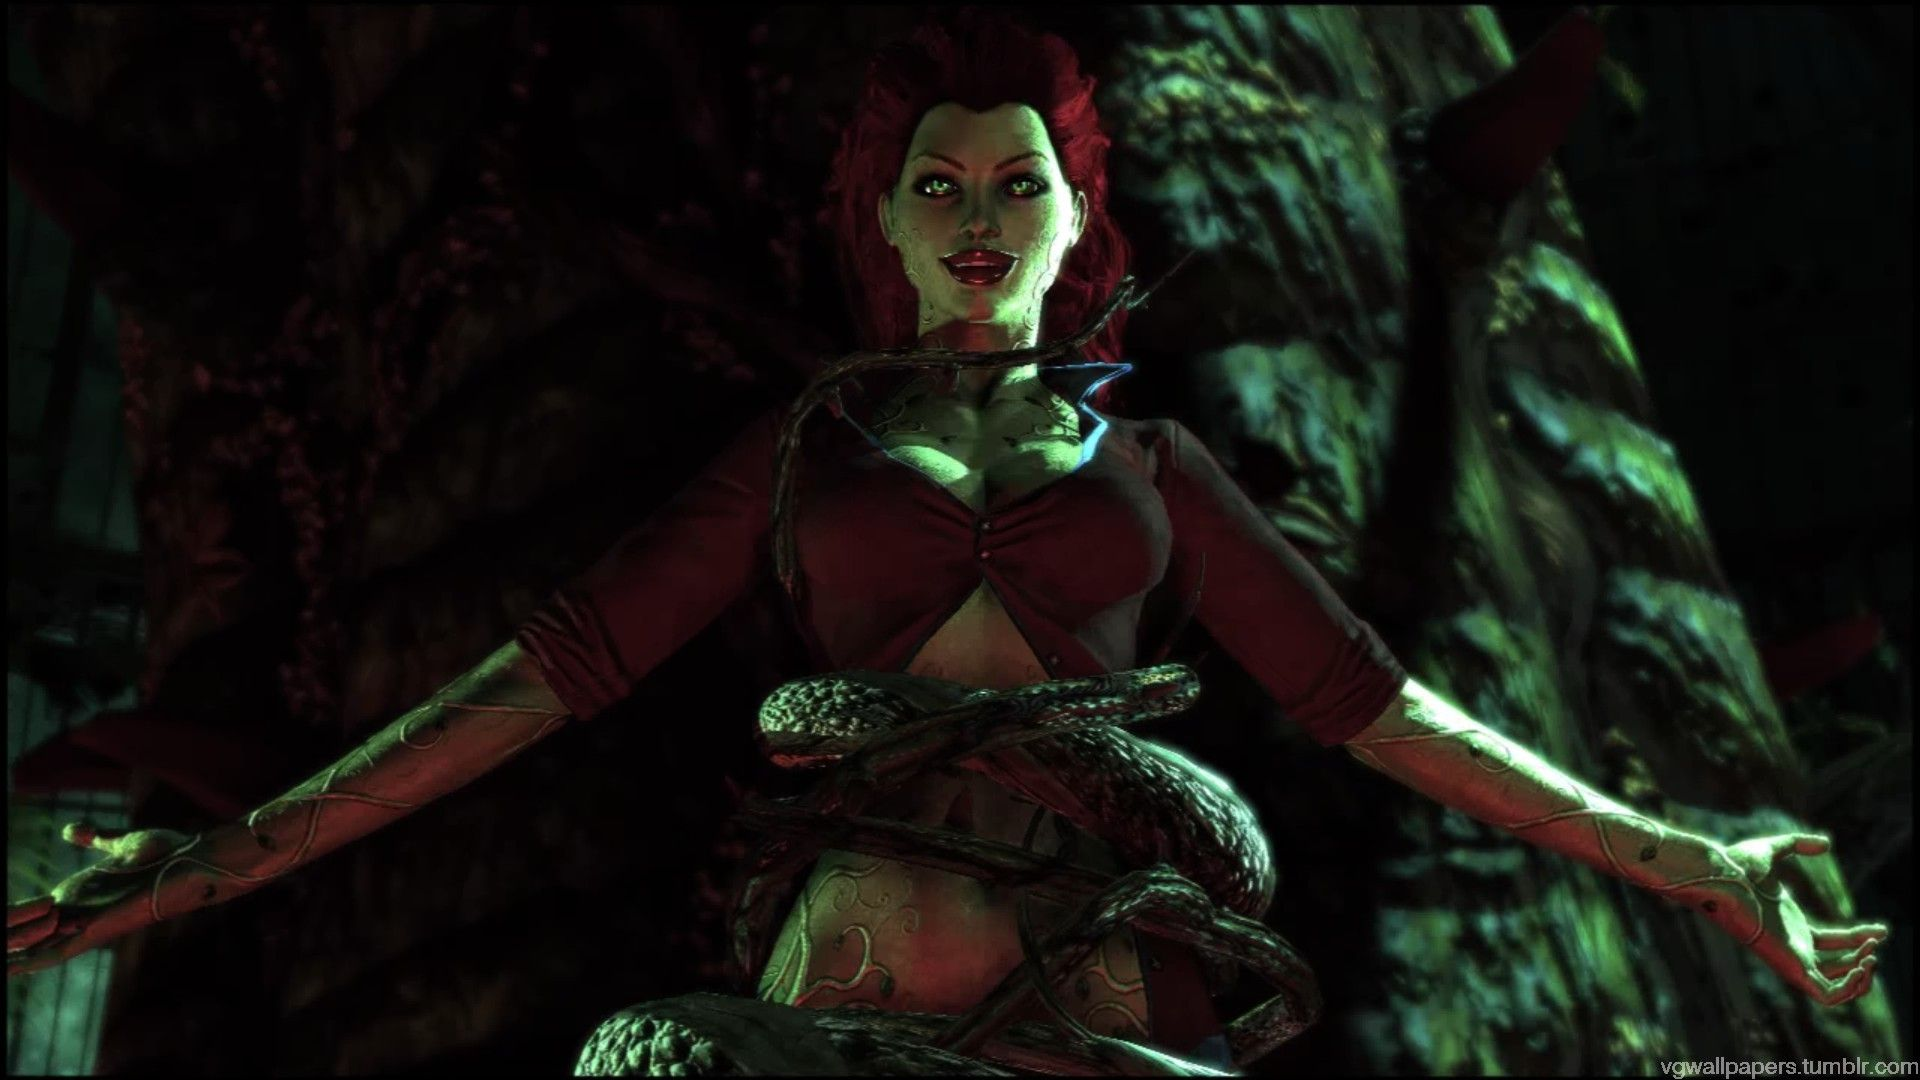 Video Game Wallpapers, Poison Ivy - a screenshot from The Batman ...